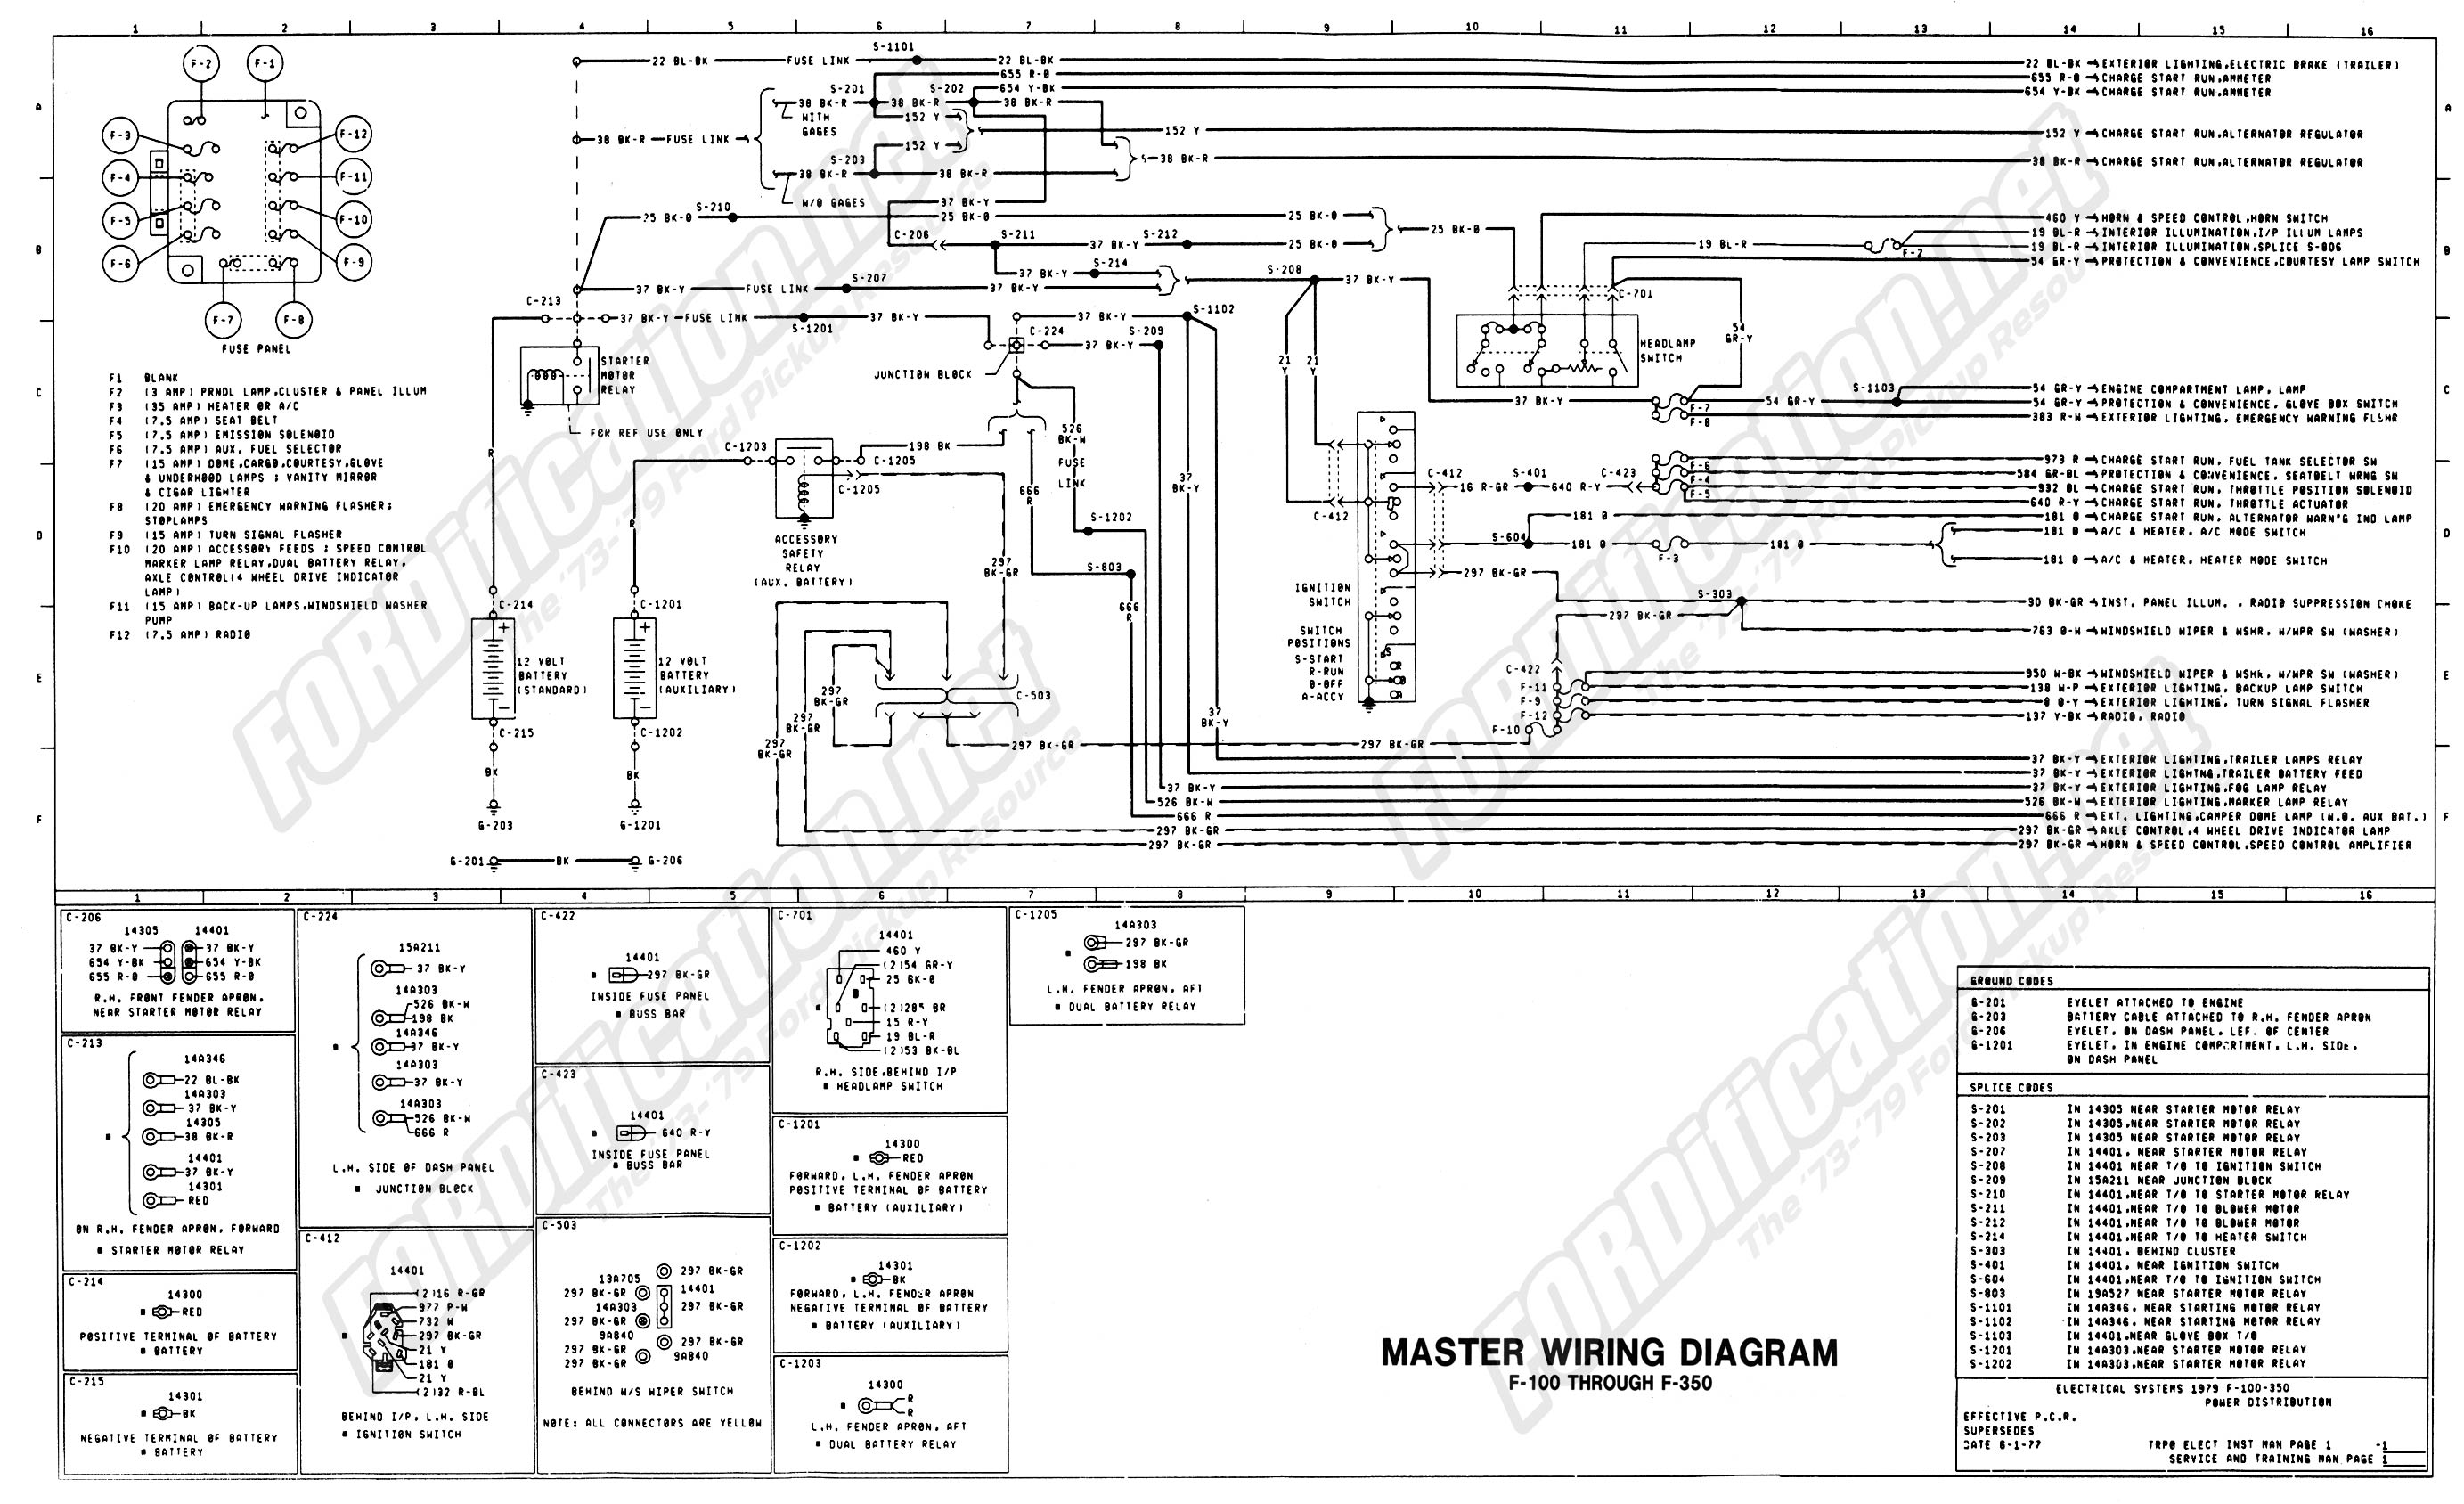 wiring_79master_1of9 1973 1979 ford truck wiring diagrams & schematics fordification net 1979 Corvette Fuse Box Diagram at gsmportal.co